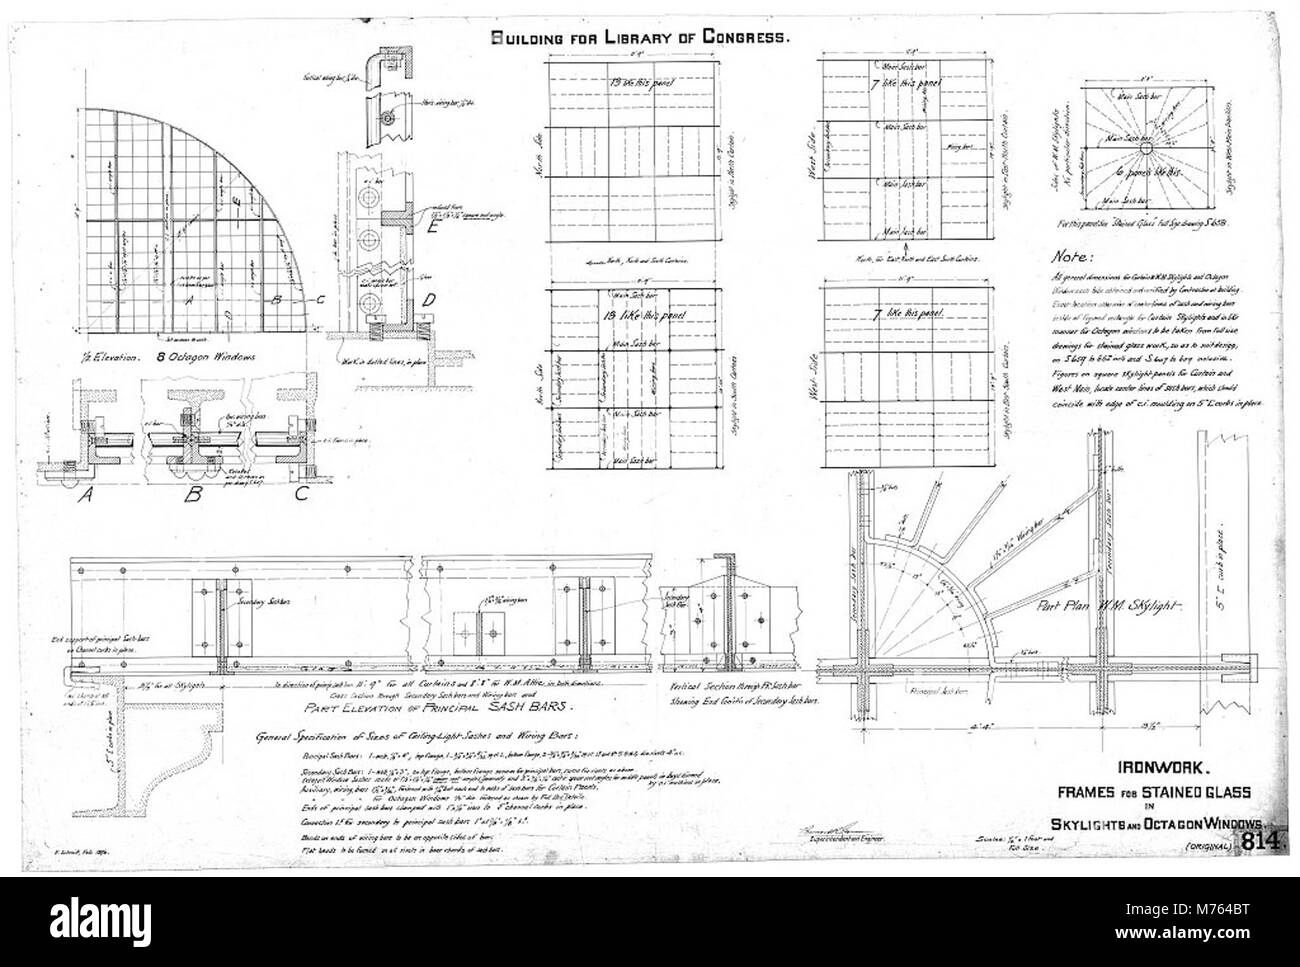 hight resolution of library of congress washington d c frames for stained glass in skylights and octagon windows ironwork details working drawing lccn2001695753